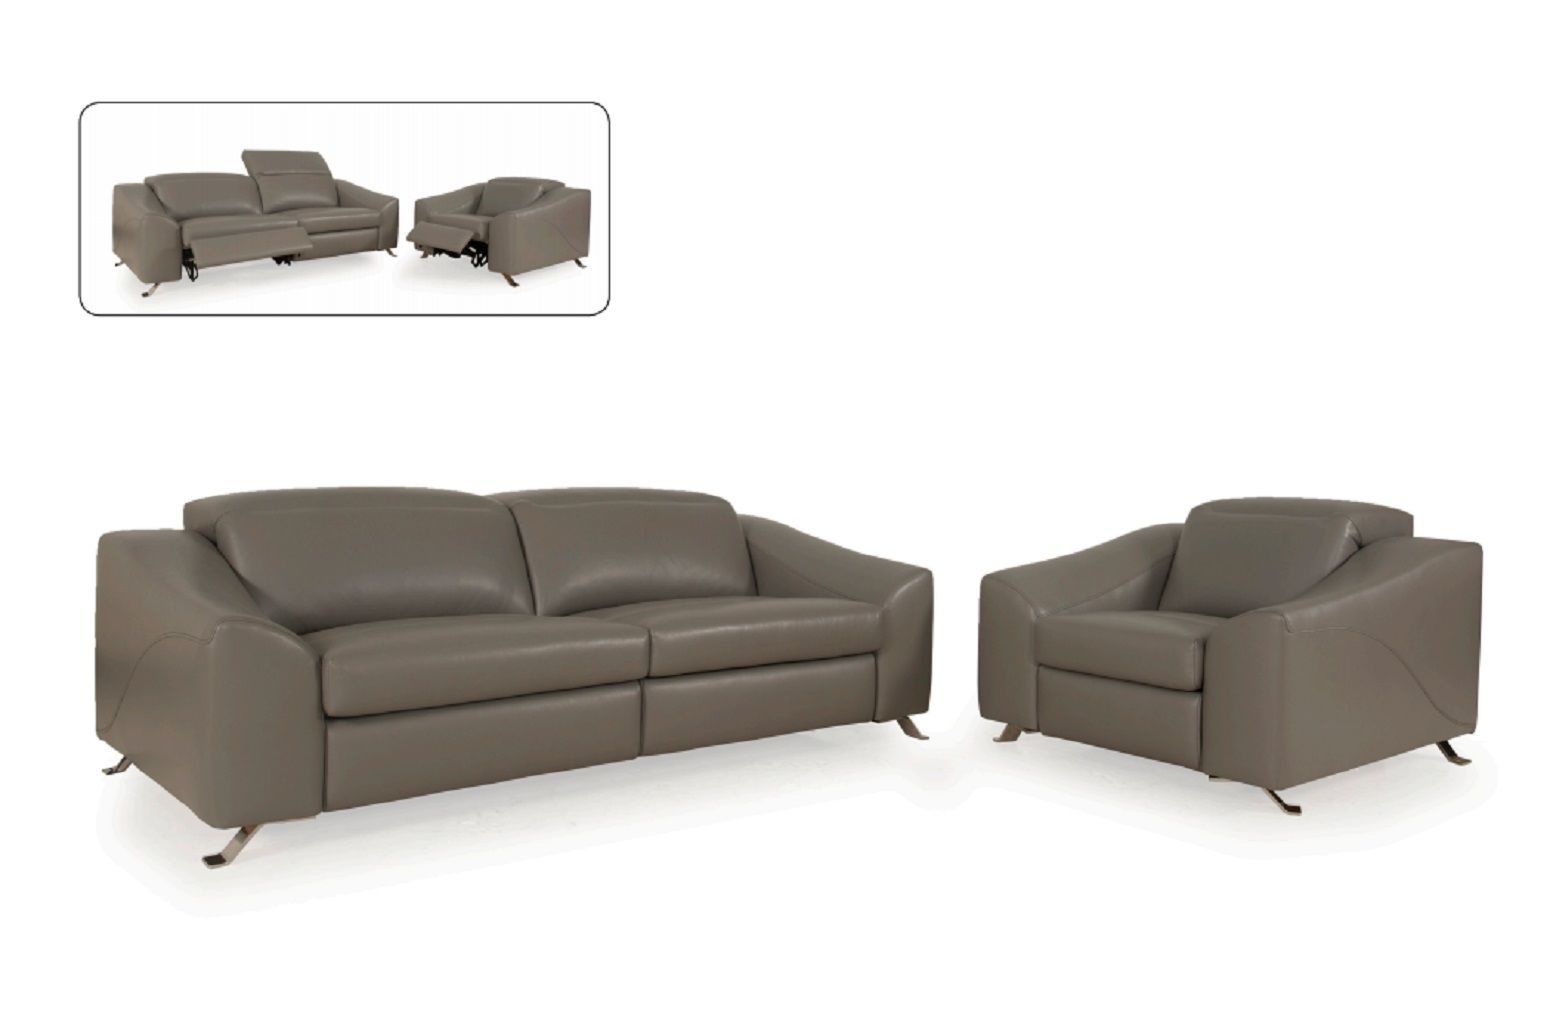 new leather sectional sofa with recliner online-Cool Leather Sectional sofa with Recliner Design